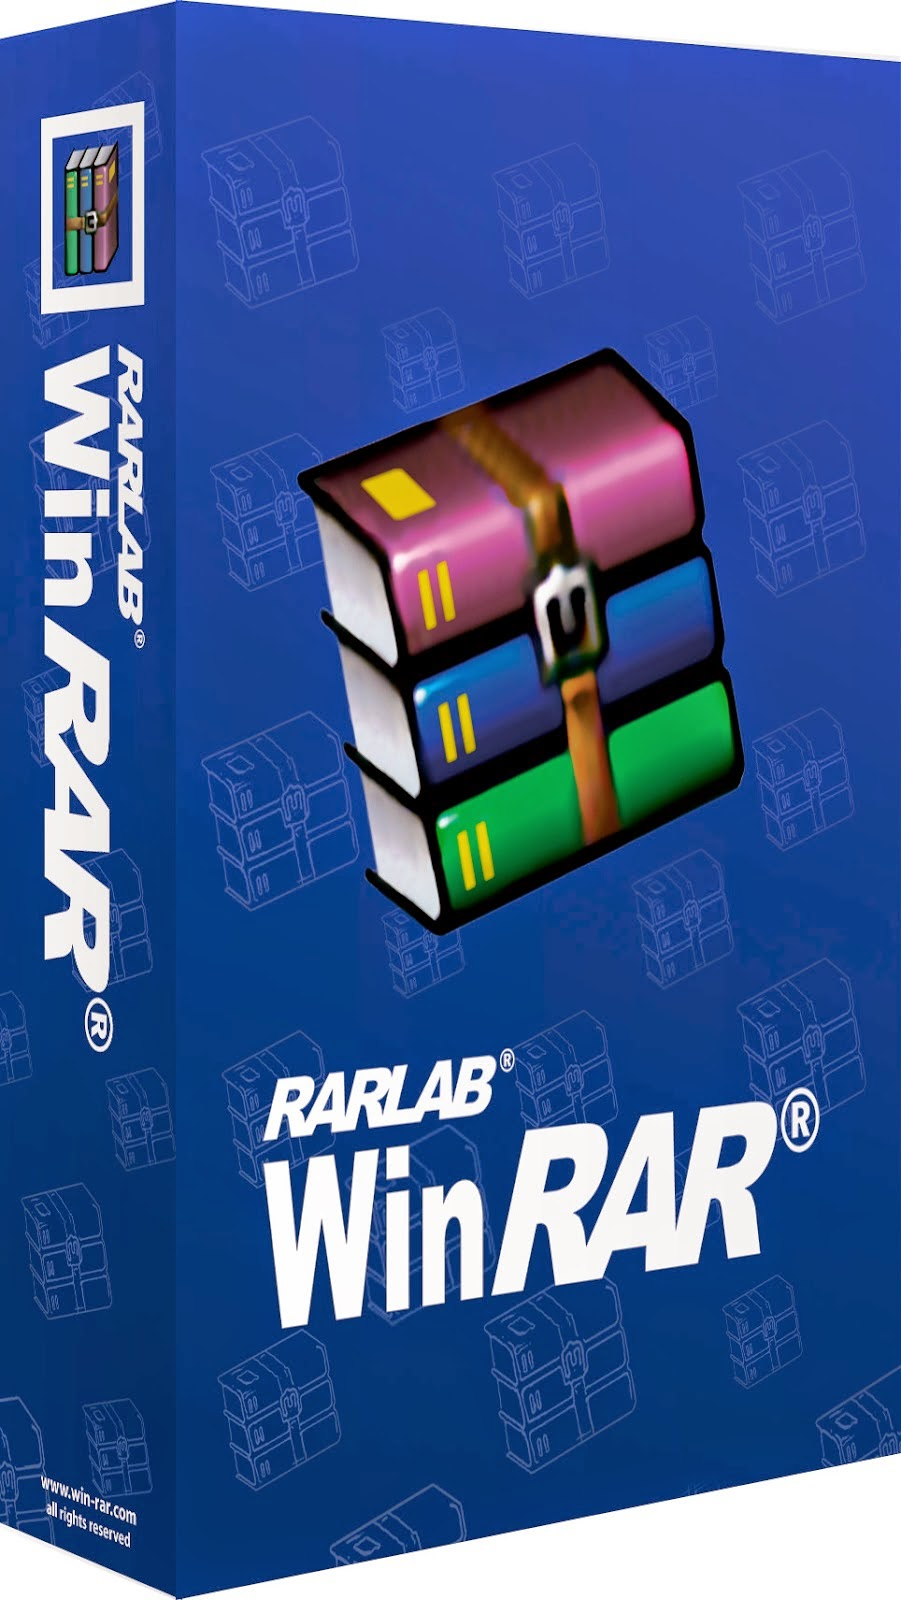 Winrar 4 10 32bit and 64bit